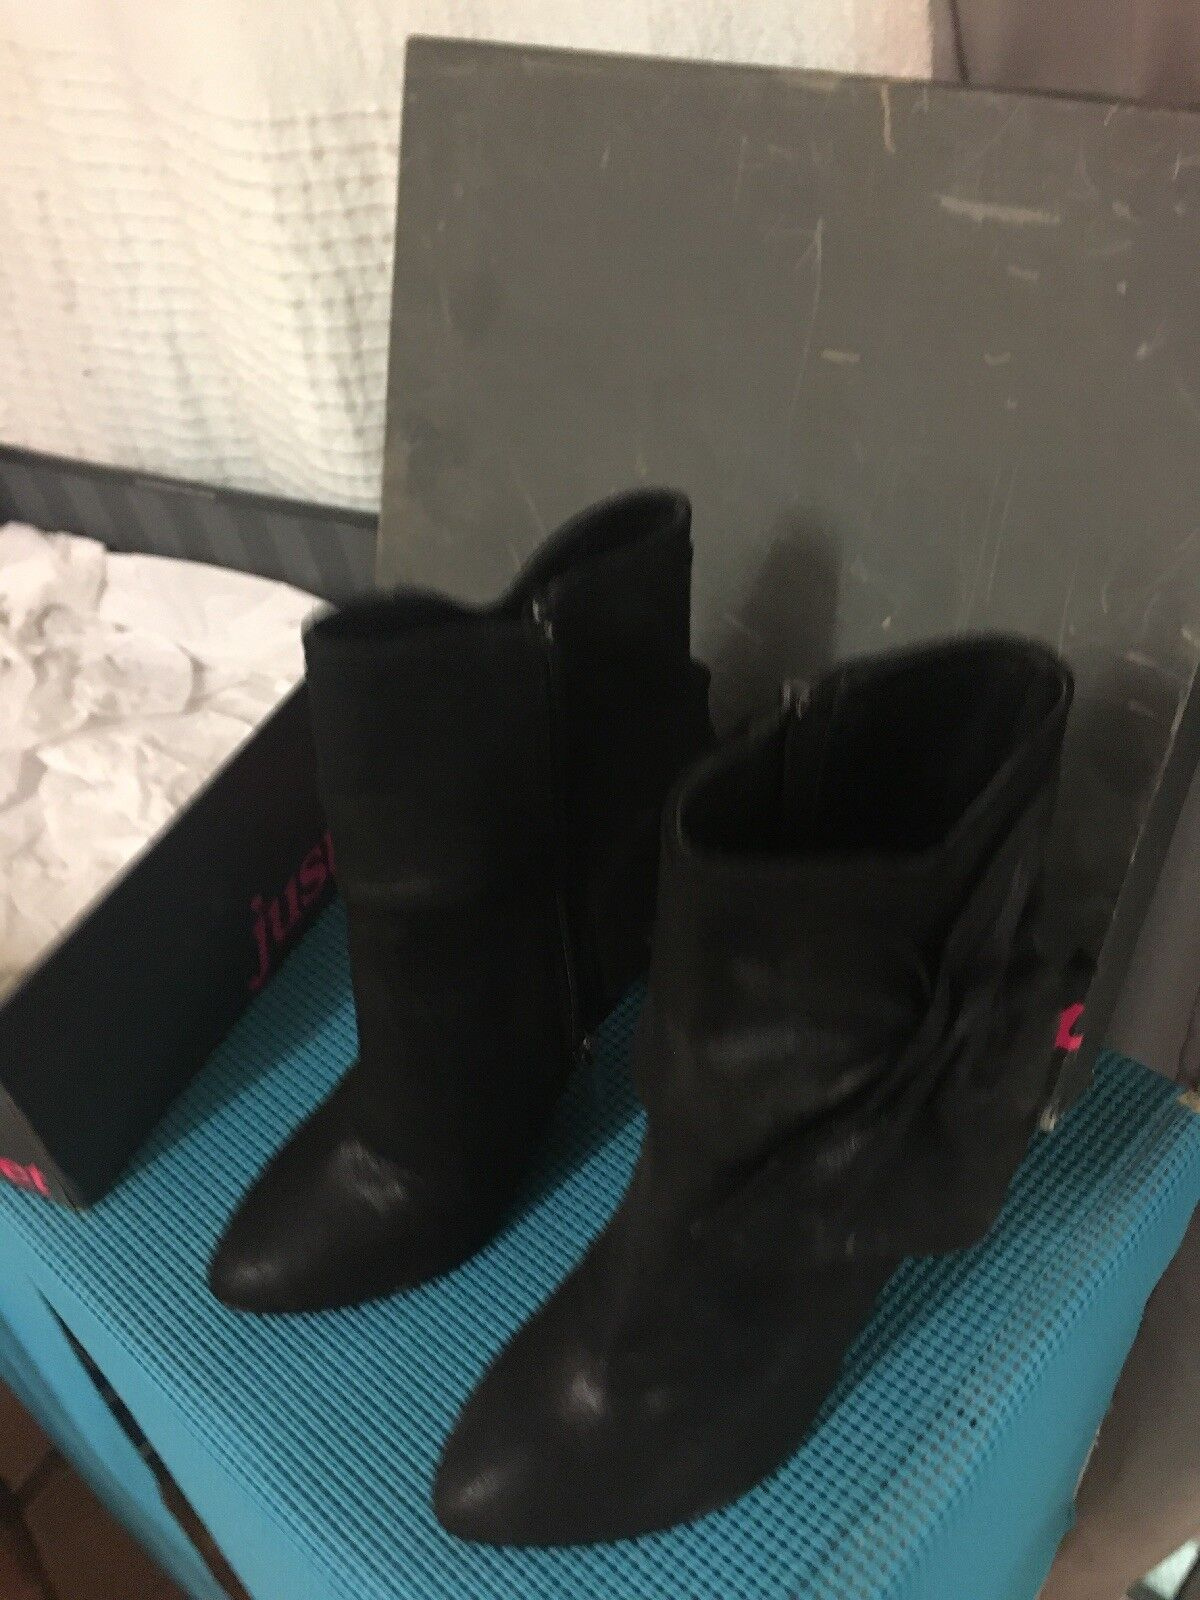 Jennifer Lopez JLO Just Sweet Sweet Sweet Justsweet black boots shoes size US 6 new in box 8f3a28